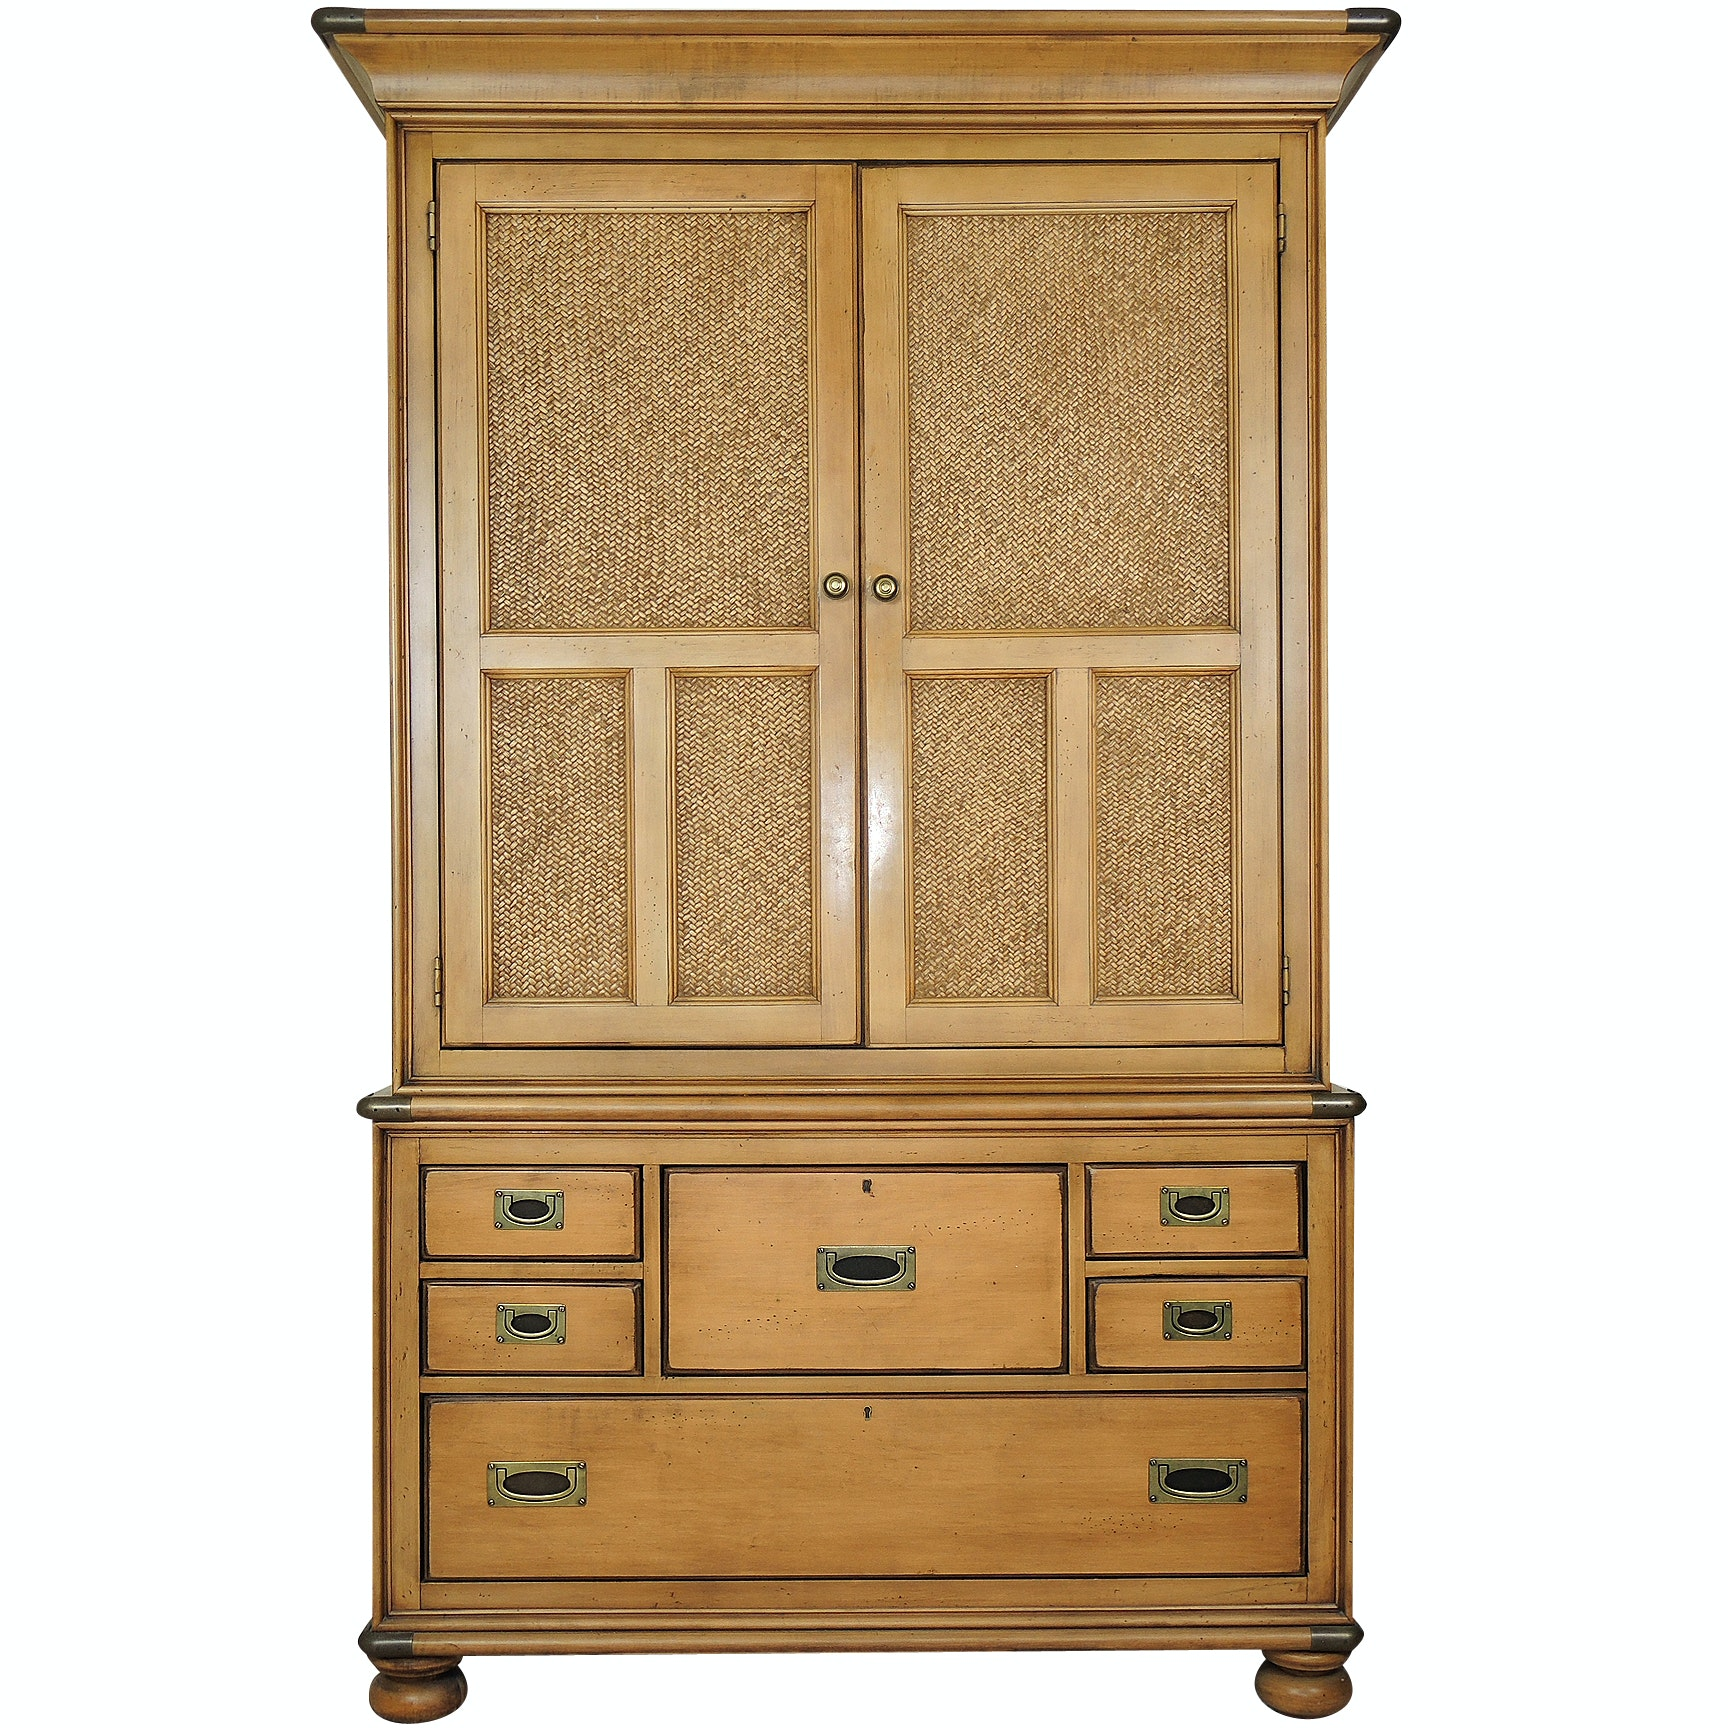 Macy's Wicker and Wood Wardrobe Armoire